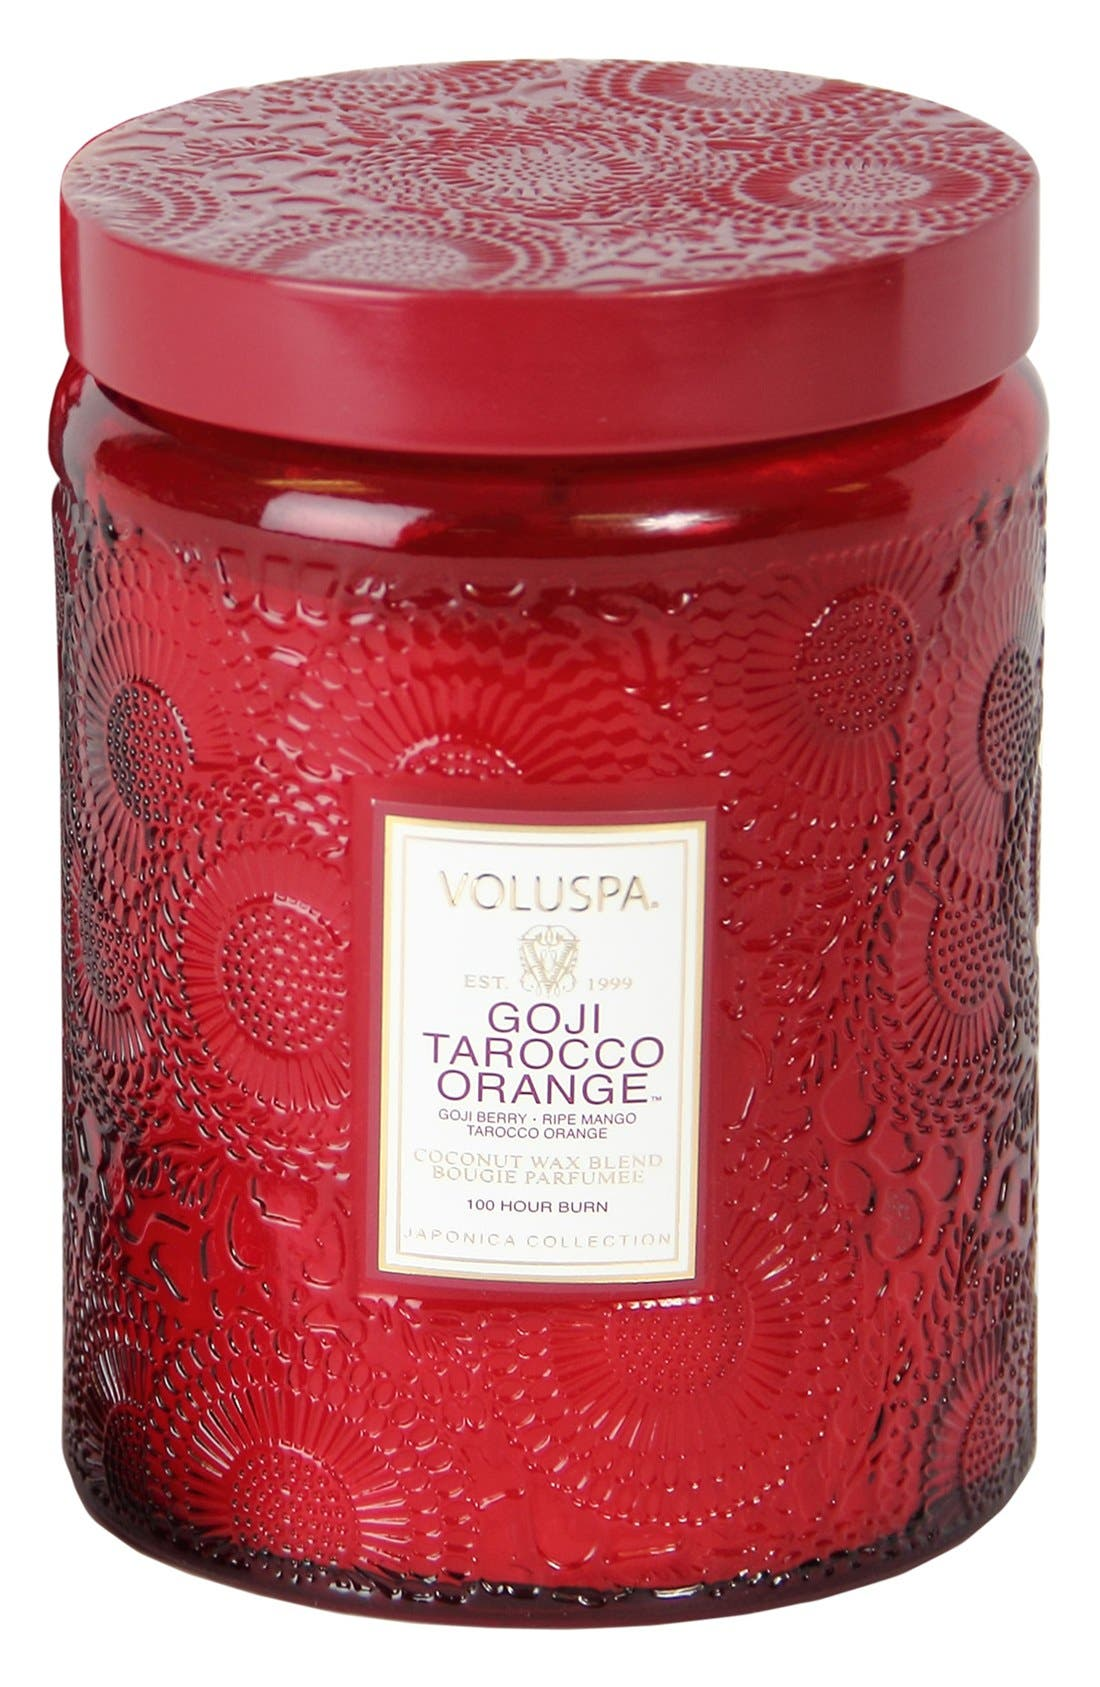 Main Image - Voluspa 'Japonica - Goji Tarocco Orange' Large Embossed Jar Candle